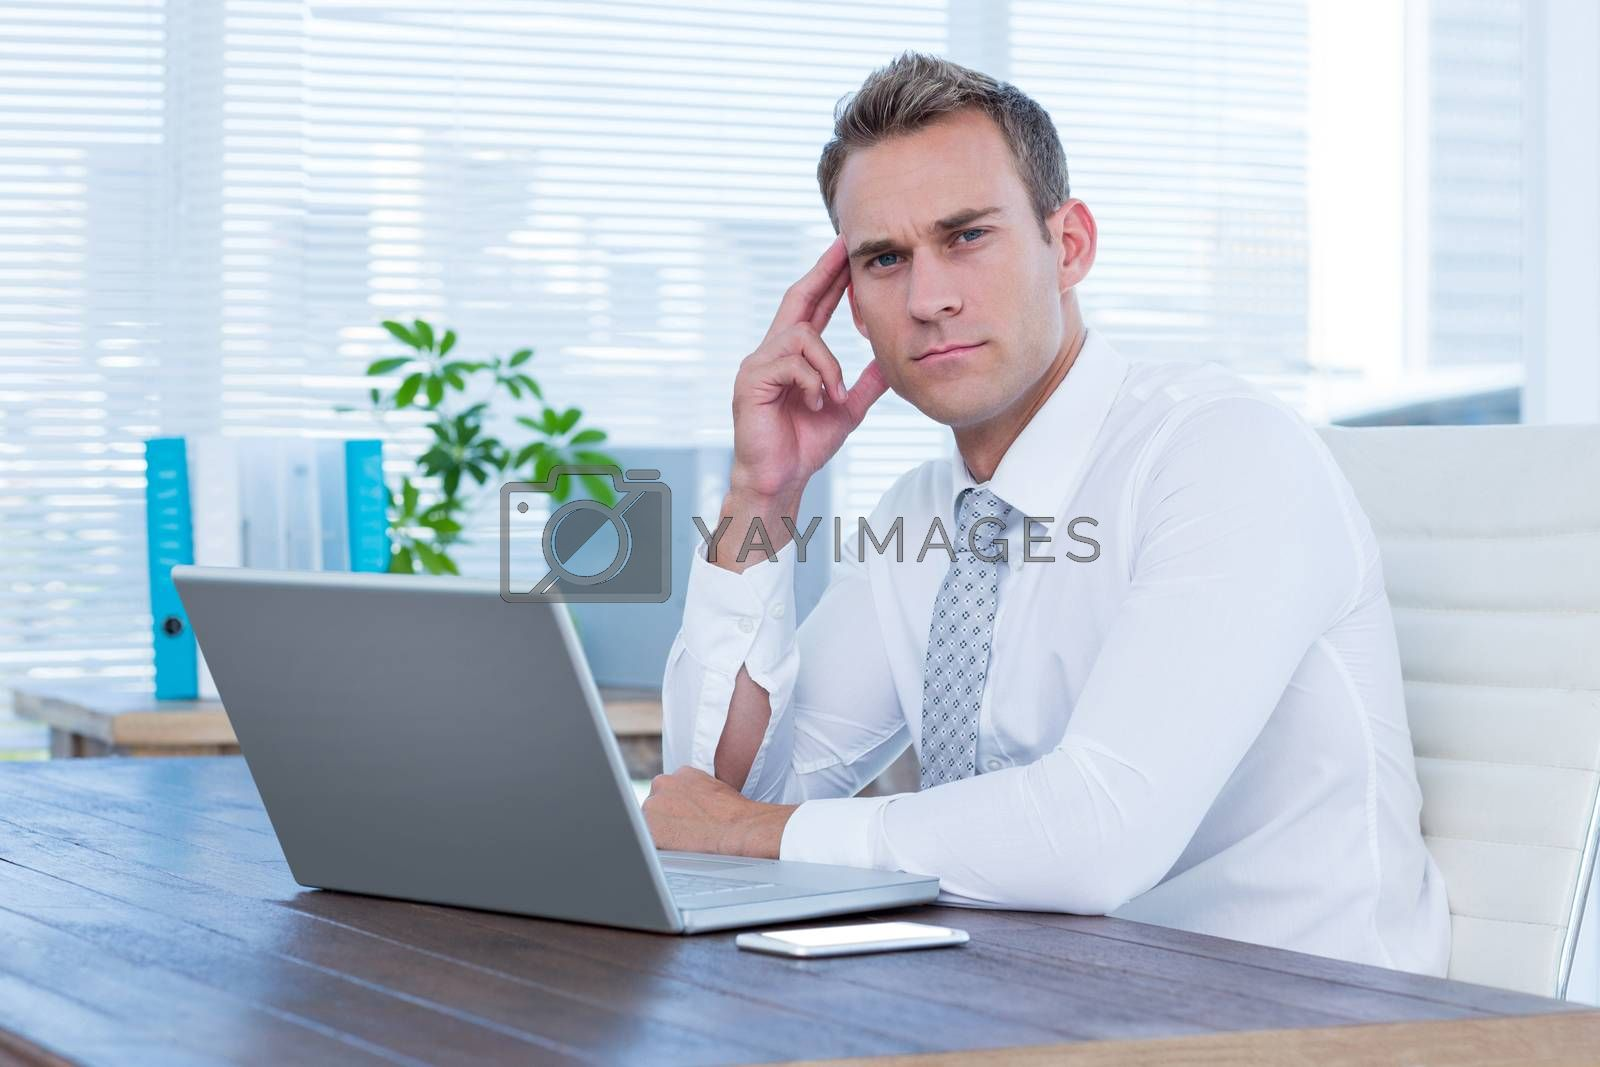 Royalty free image of Focused businessman looking at the camera by Wavebreakmedia